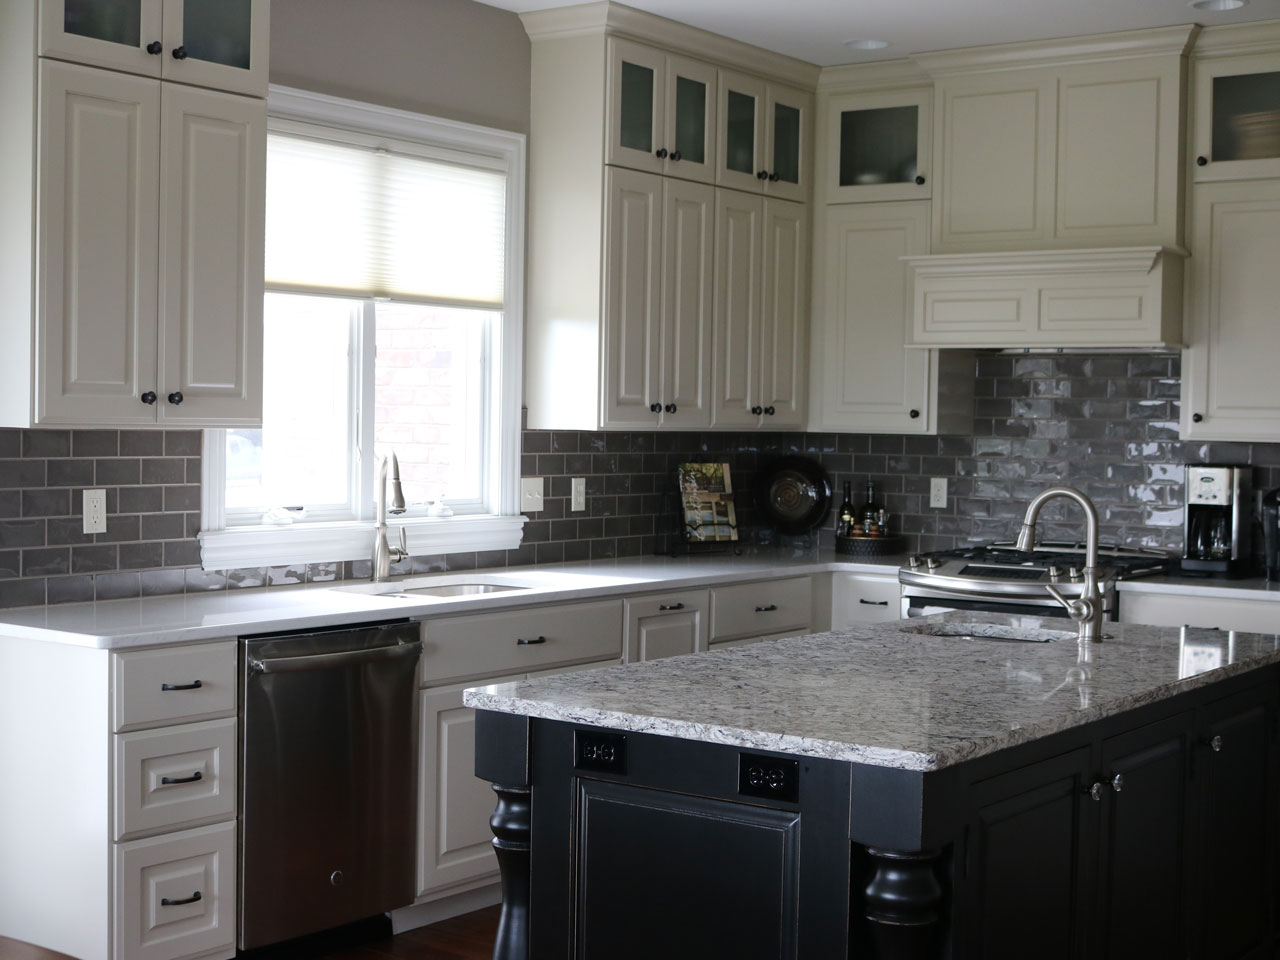 File Construction remodels kitchens that fit the individual needs of its clients.